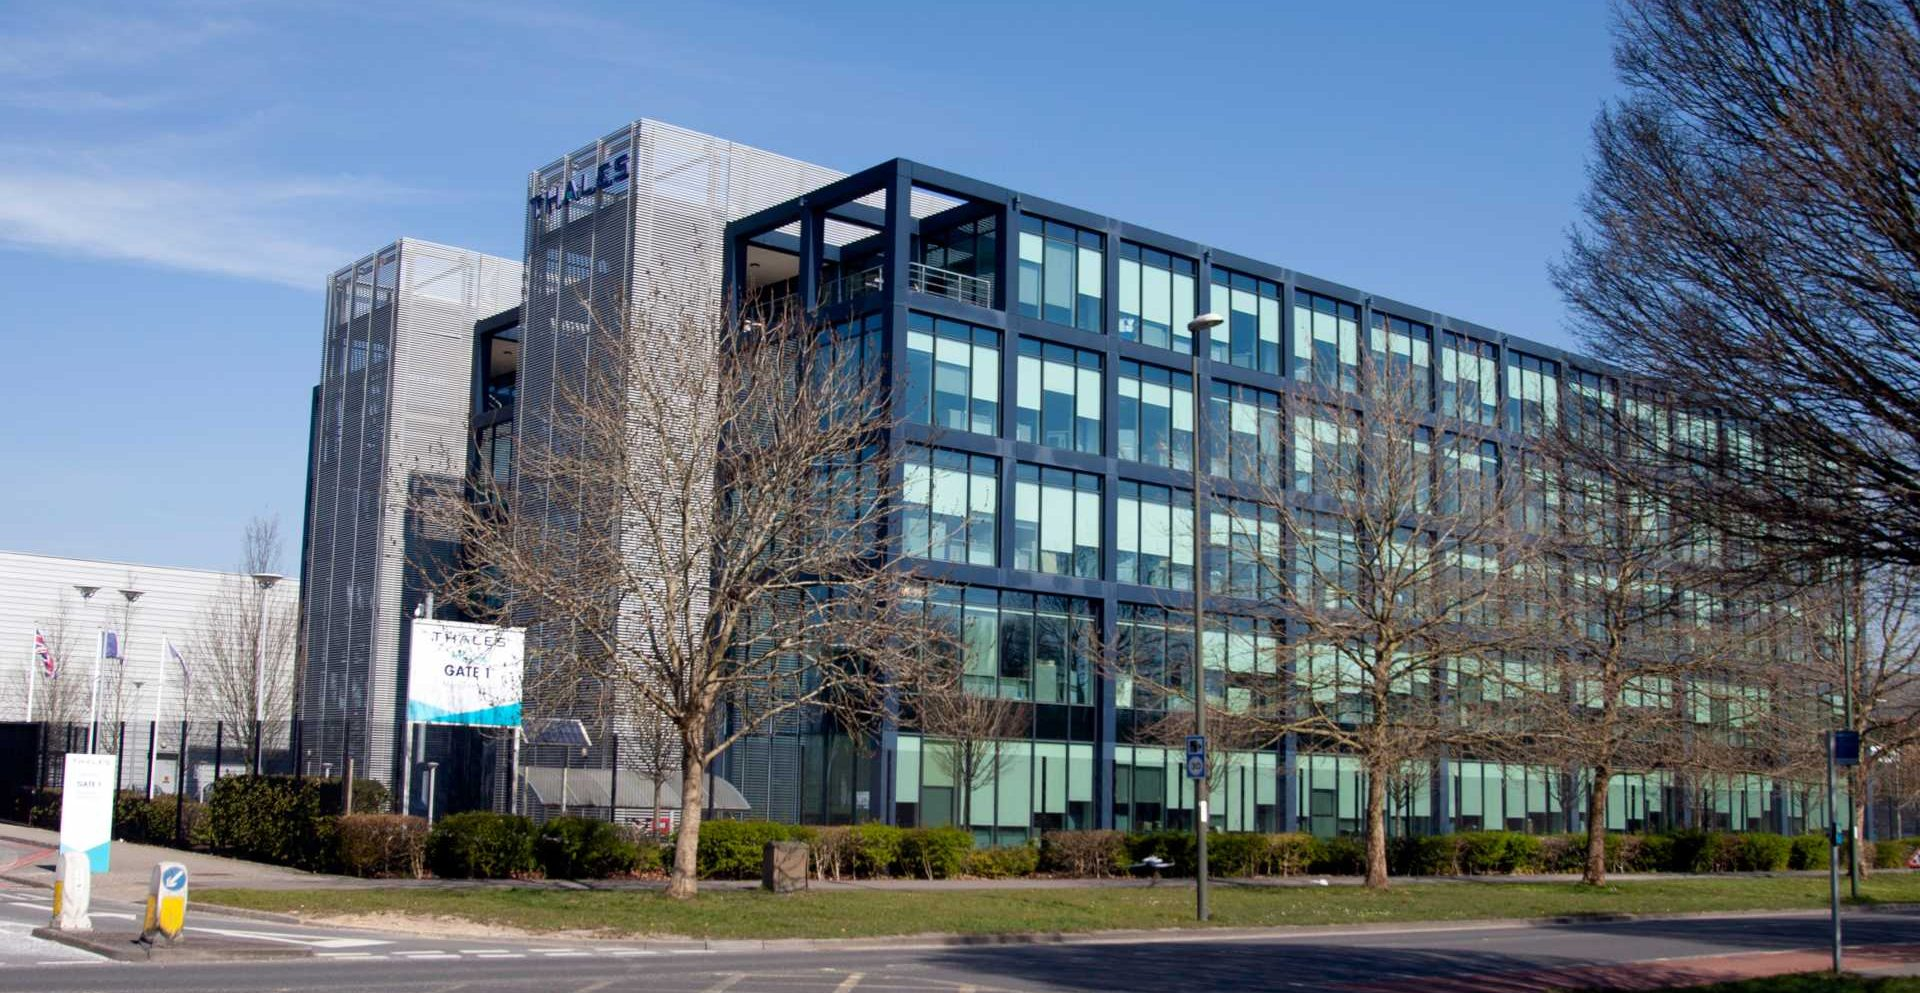 Crawley West Sussex March 26th 2020 Manor Royal industrial estate Thales main office block on next to the A23 - Shutterstock